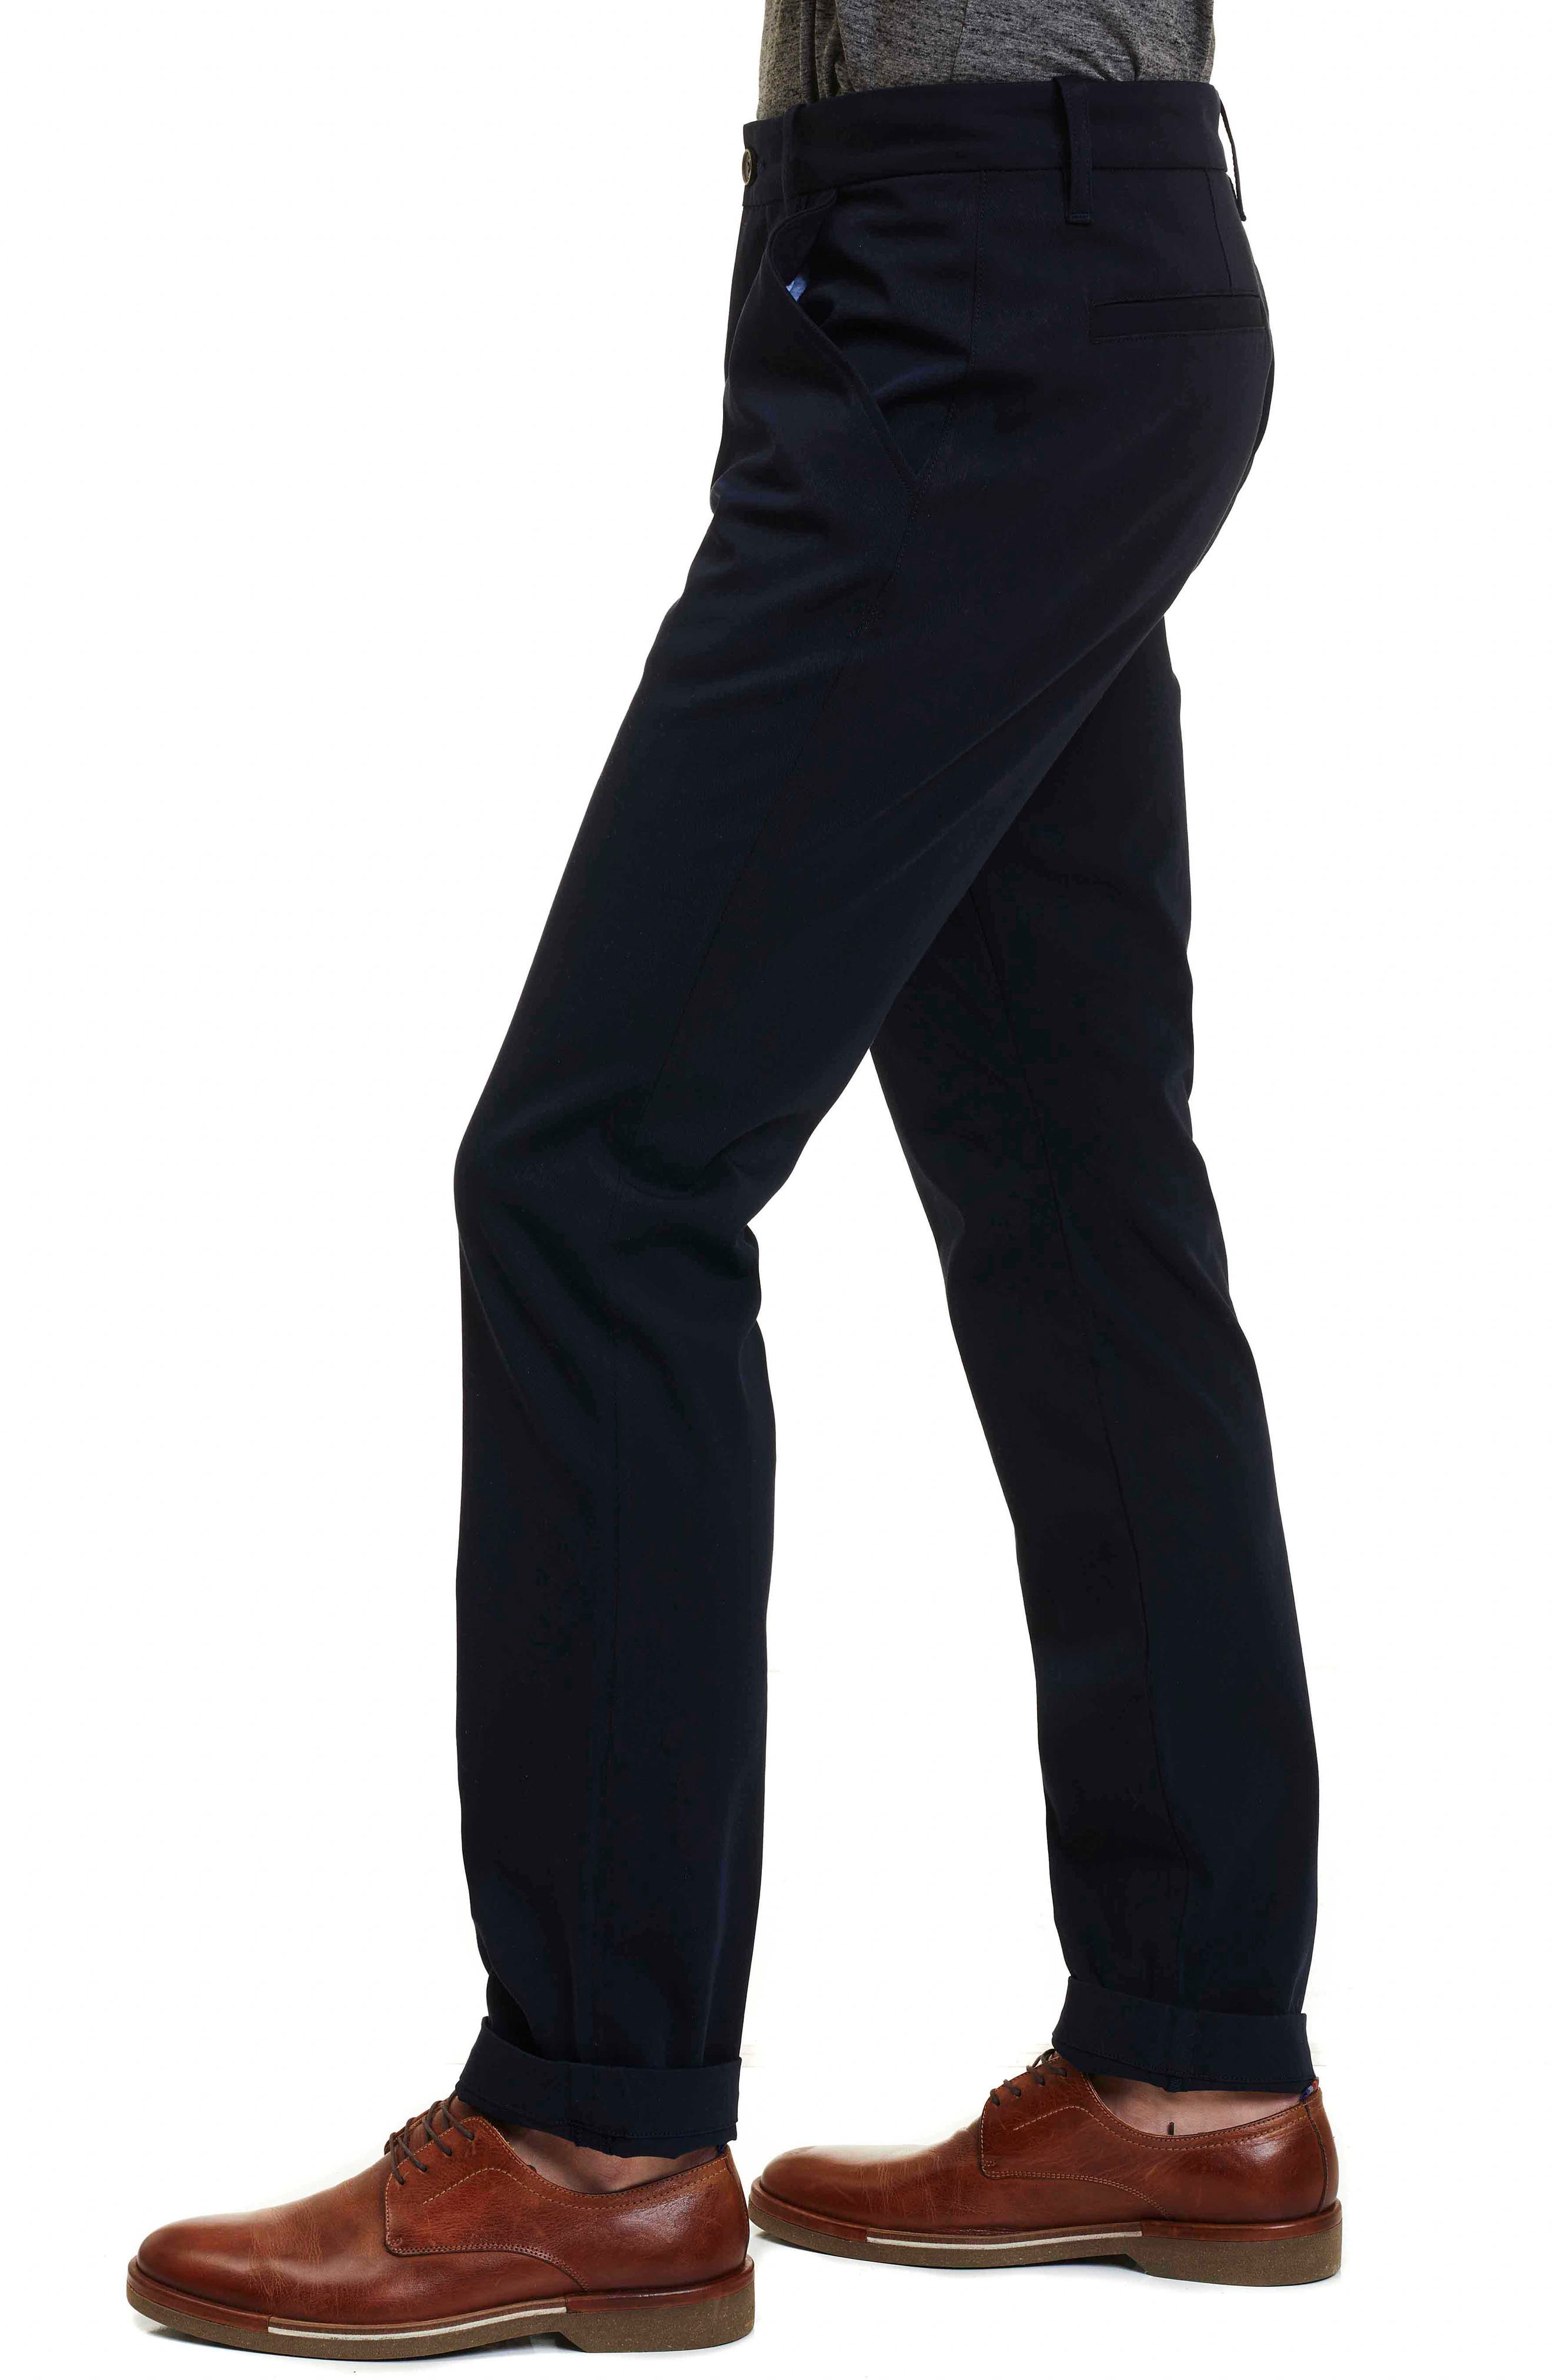 Layton Tailored Fit Stretch Cotton Pants,                             Alternate thumbnail 4, color,